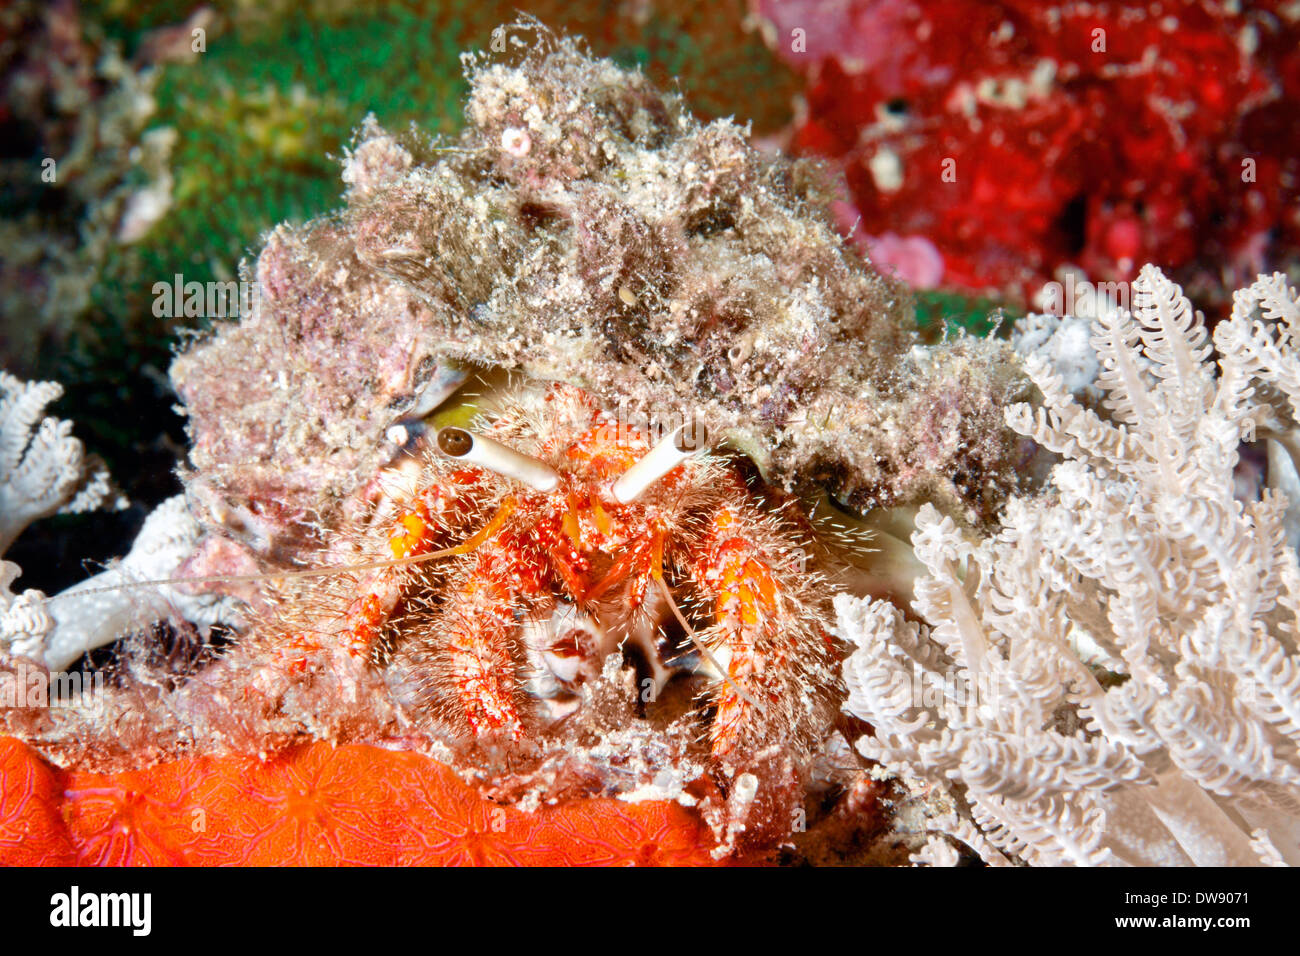 Marine hairy red hermit crab, Dardanus lagopdes, walking among corals on the reef. - Stock Image